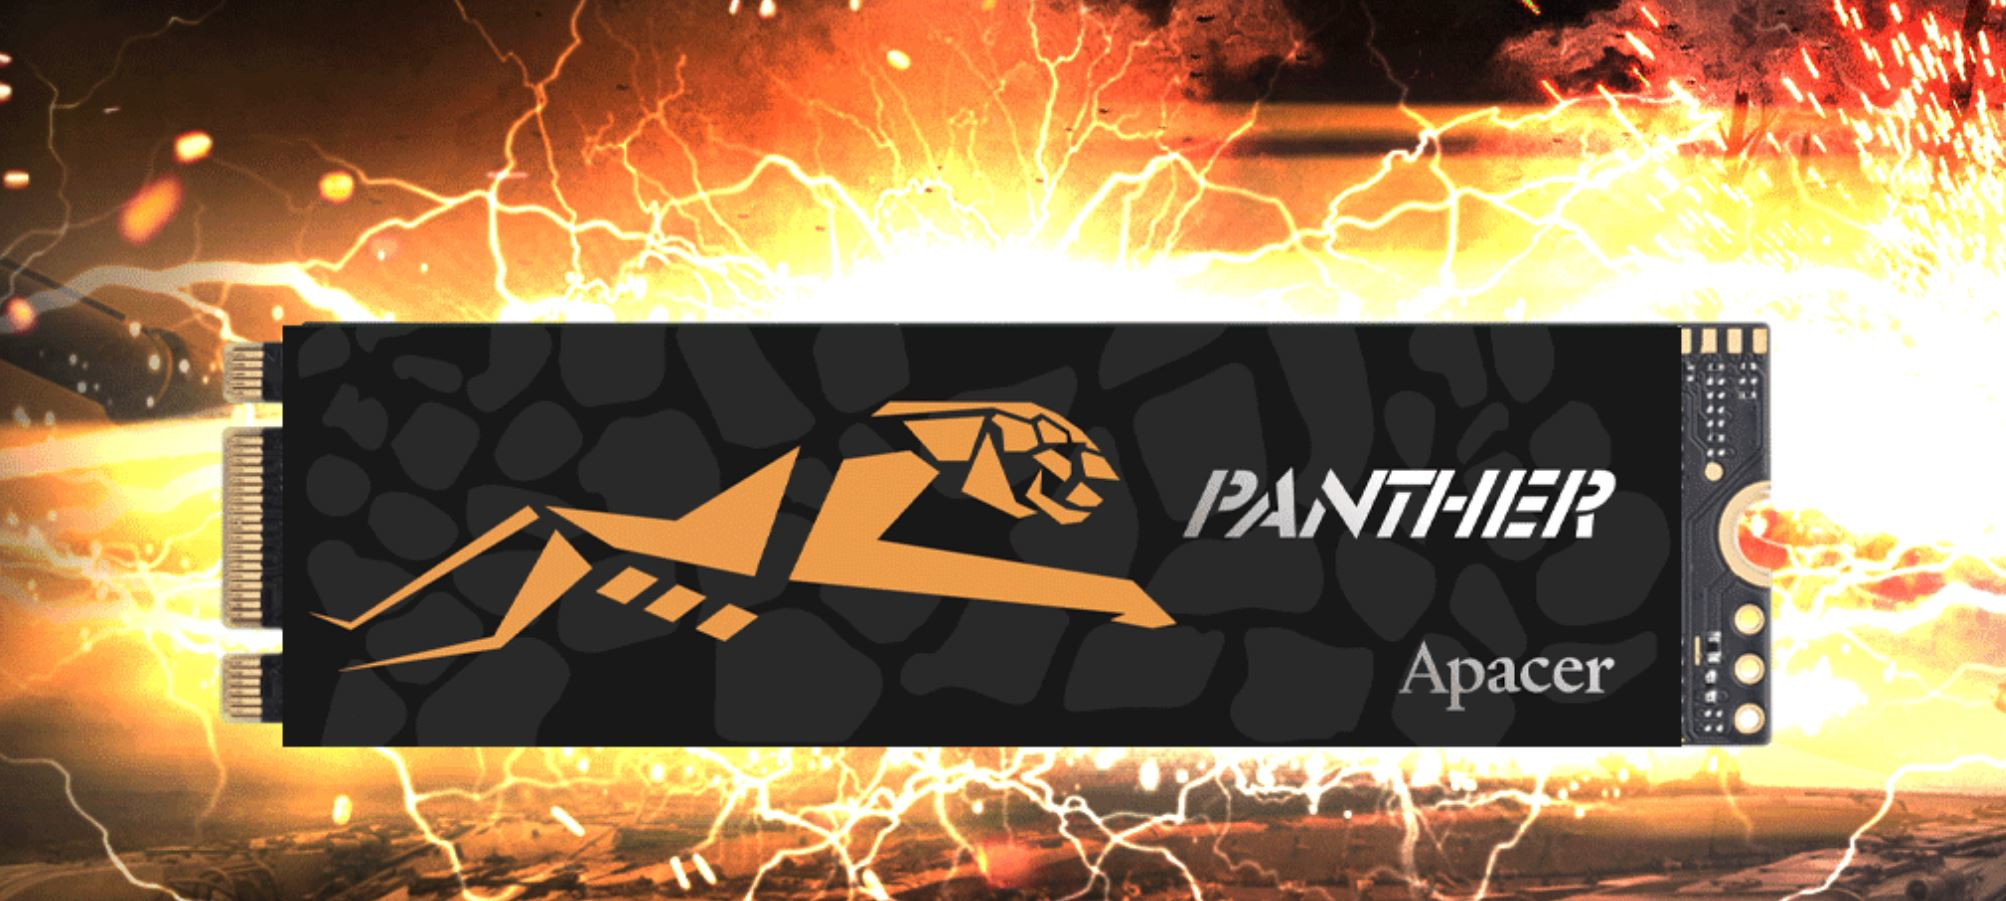 Apacer Announces the Panther AS2280P2 PRO M 2 NVMe SSDs